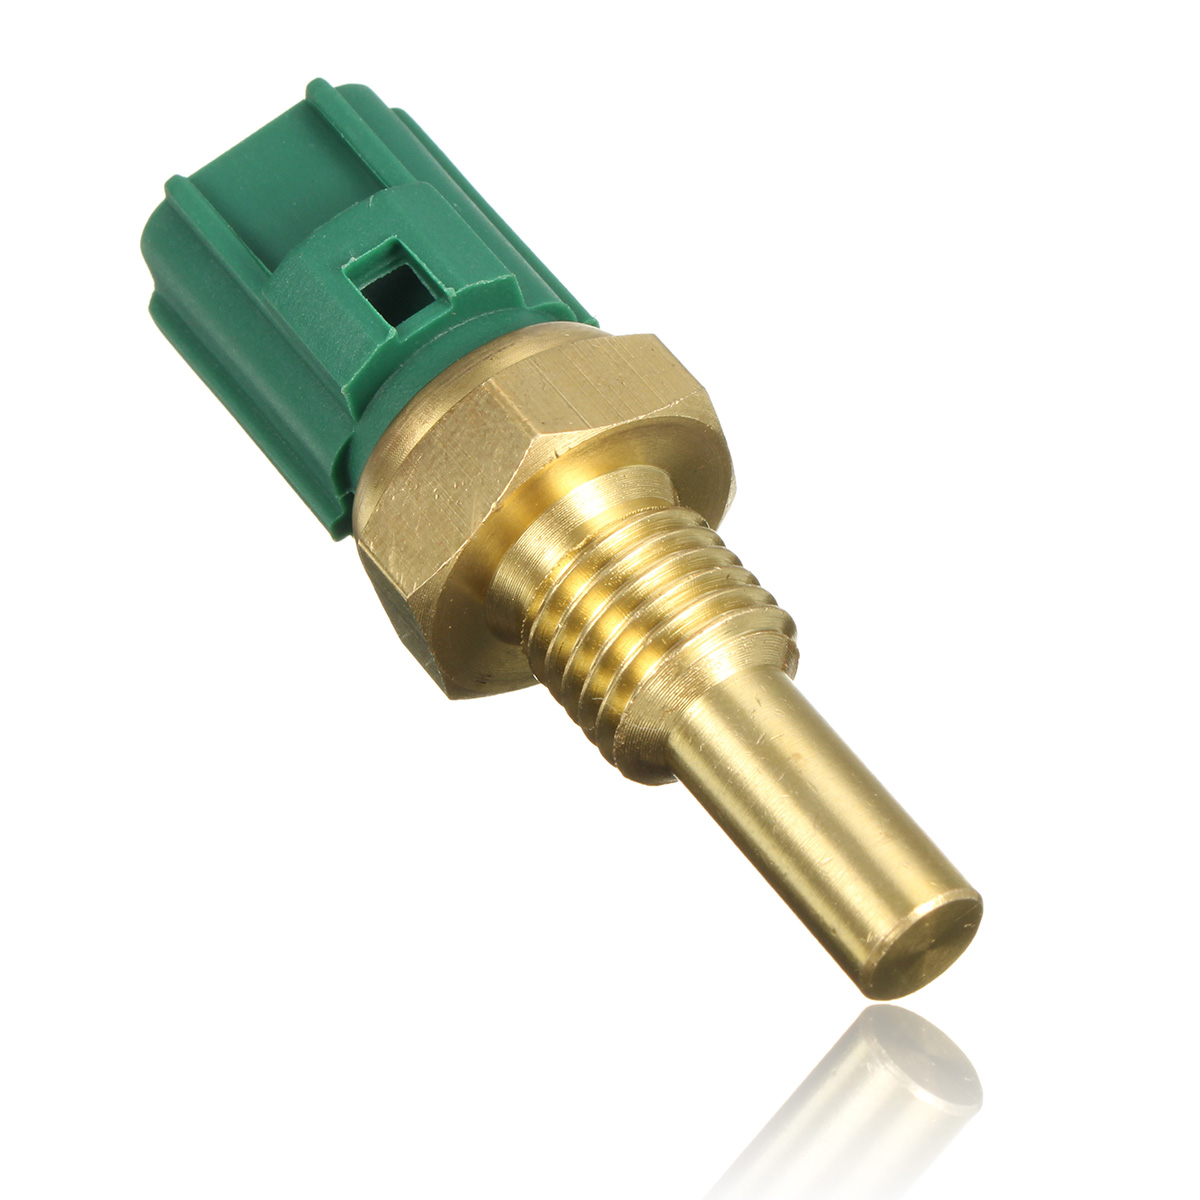 Engine Coolant Temperature Sensor Green Color Placement On Front Vehicle